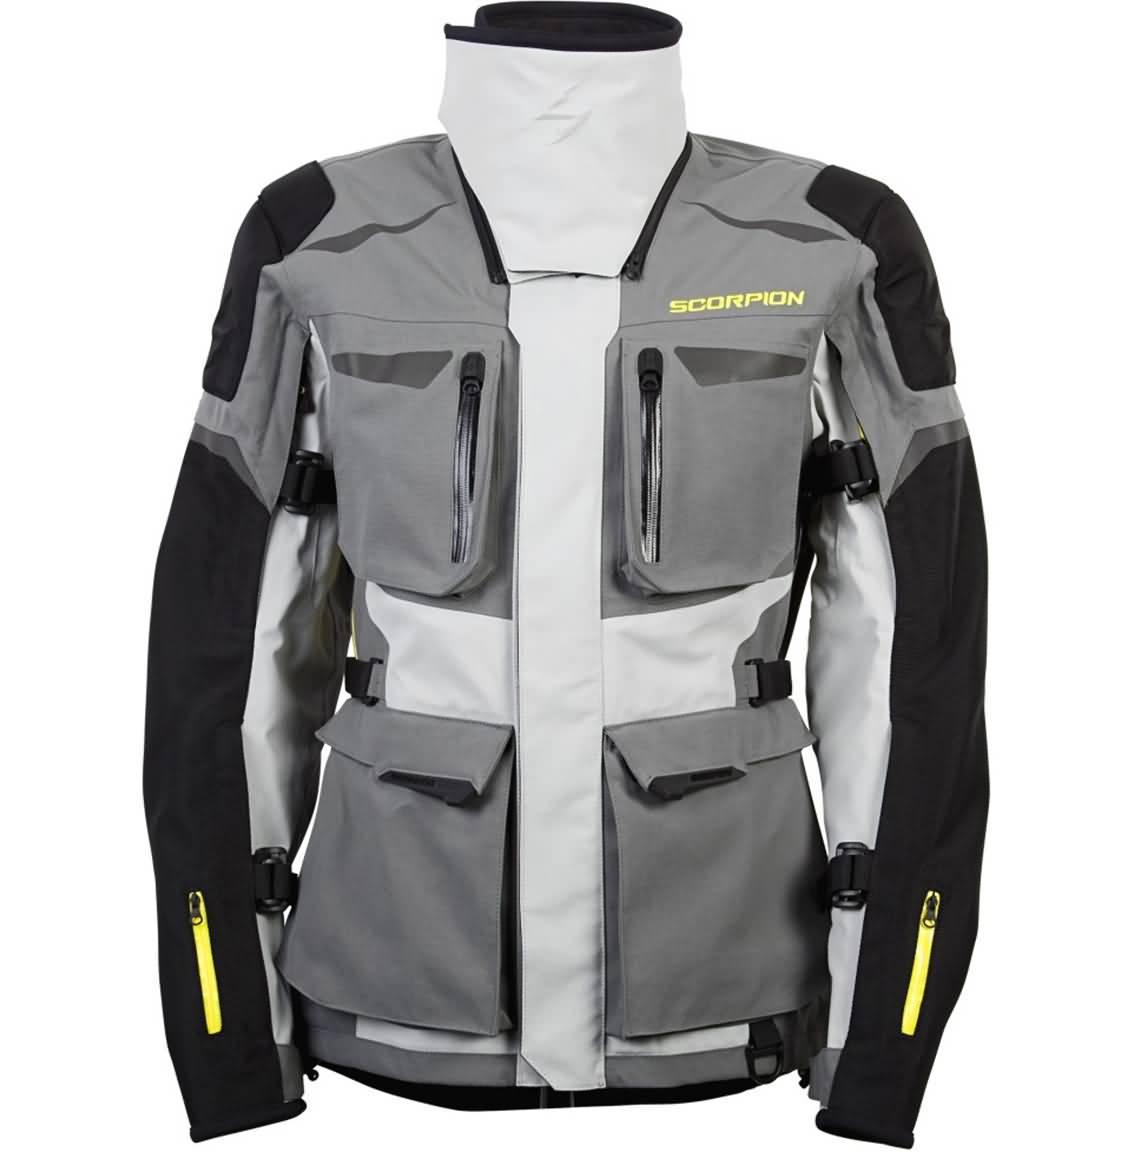 Scorpion 2017 | Premium Street Motorcycle Jackets Collection